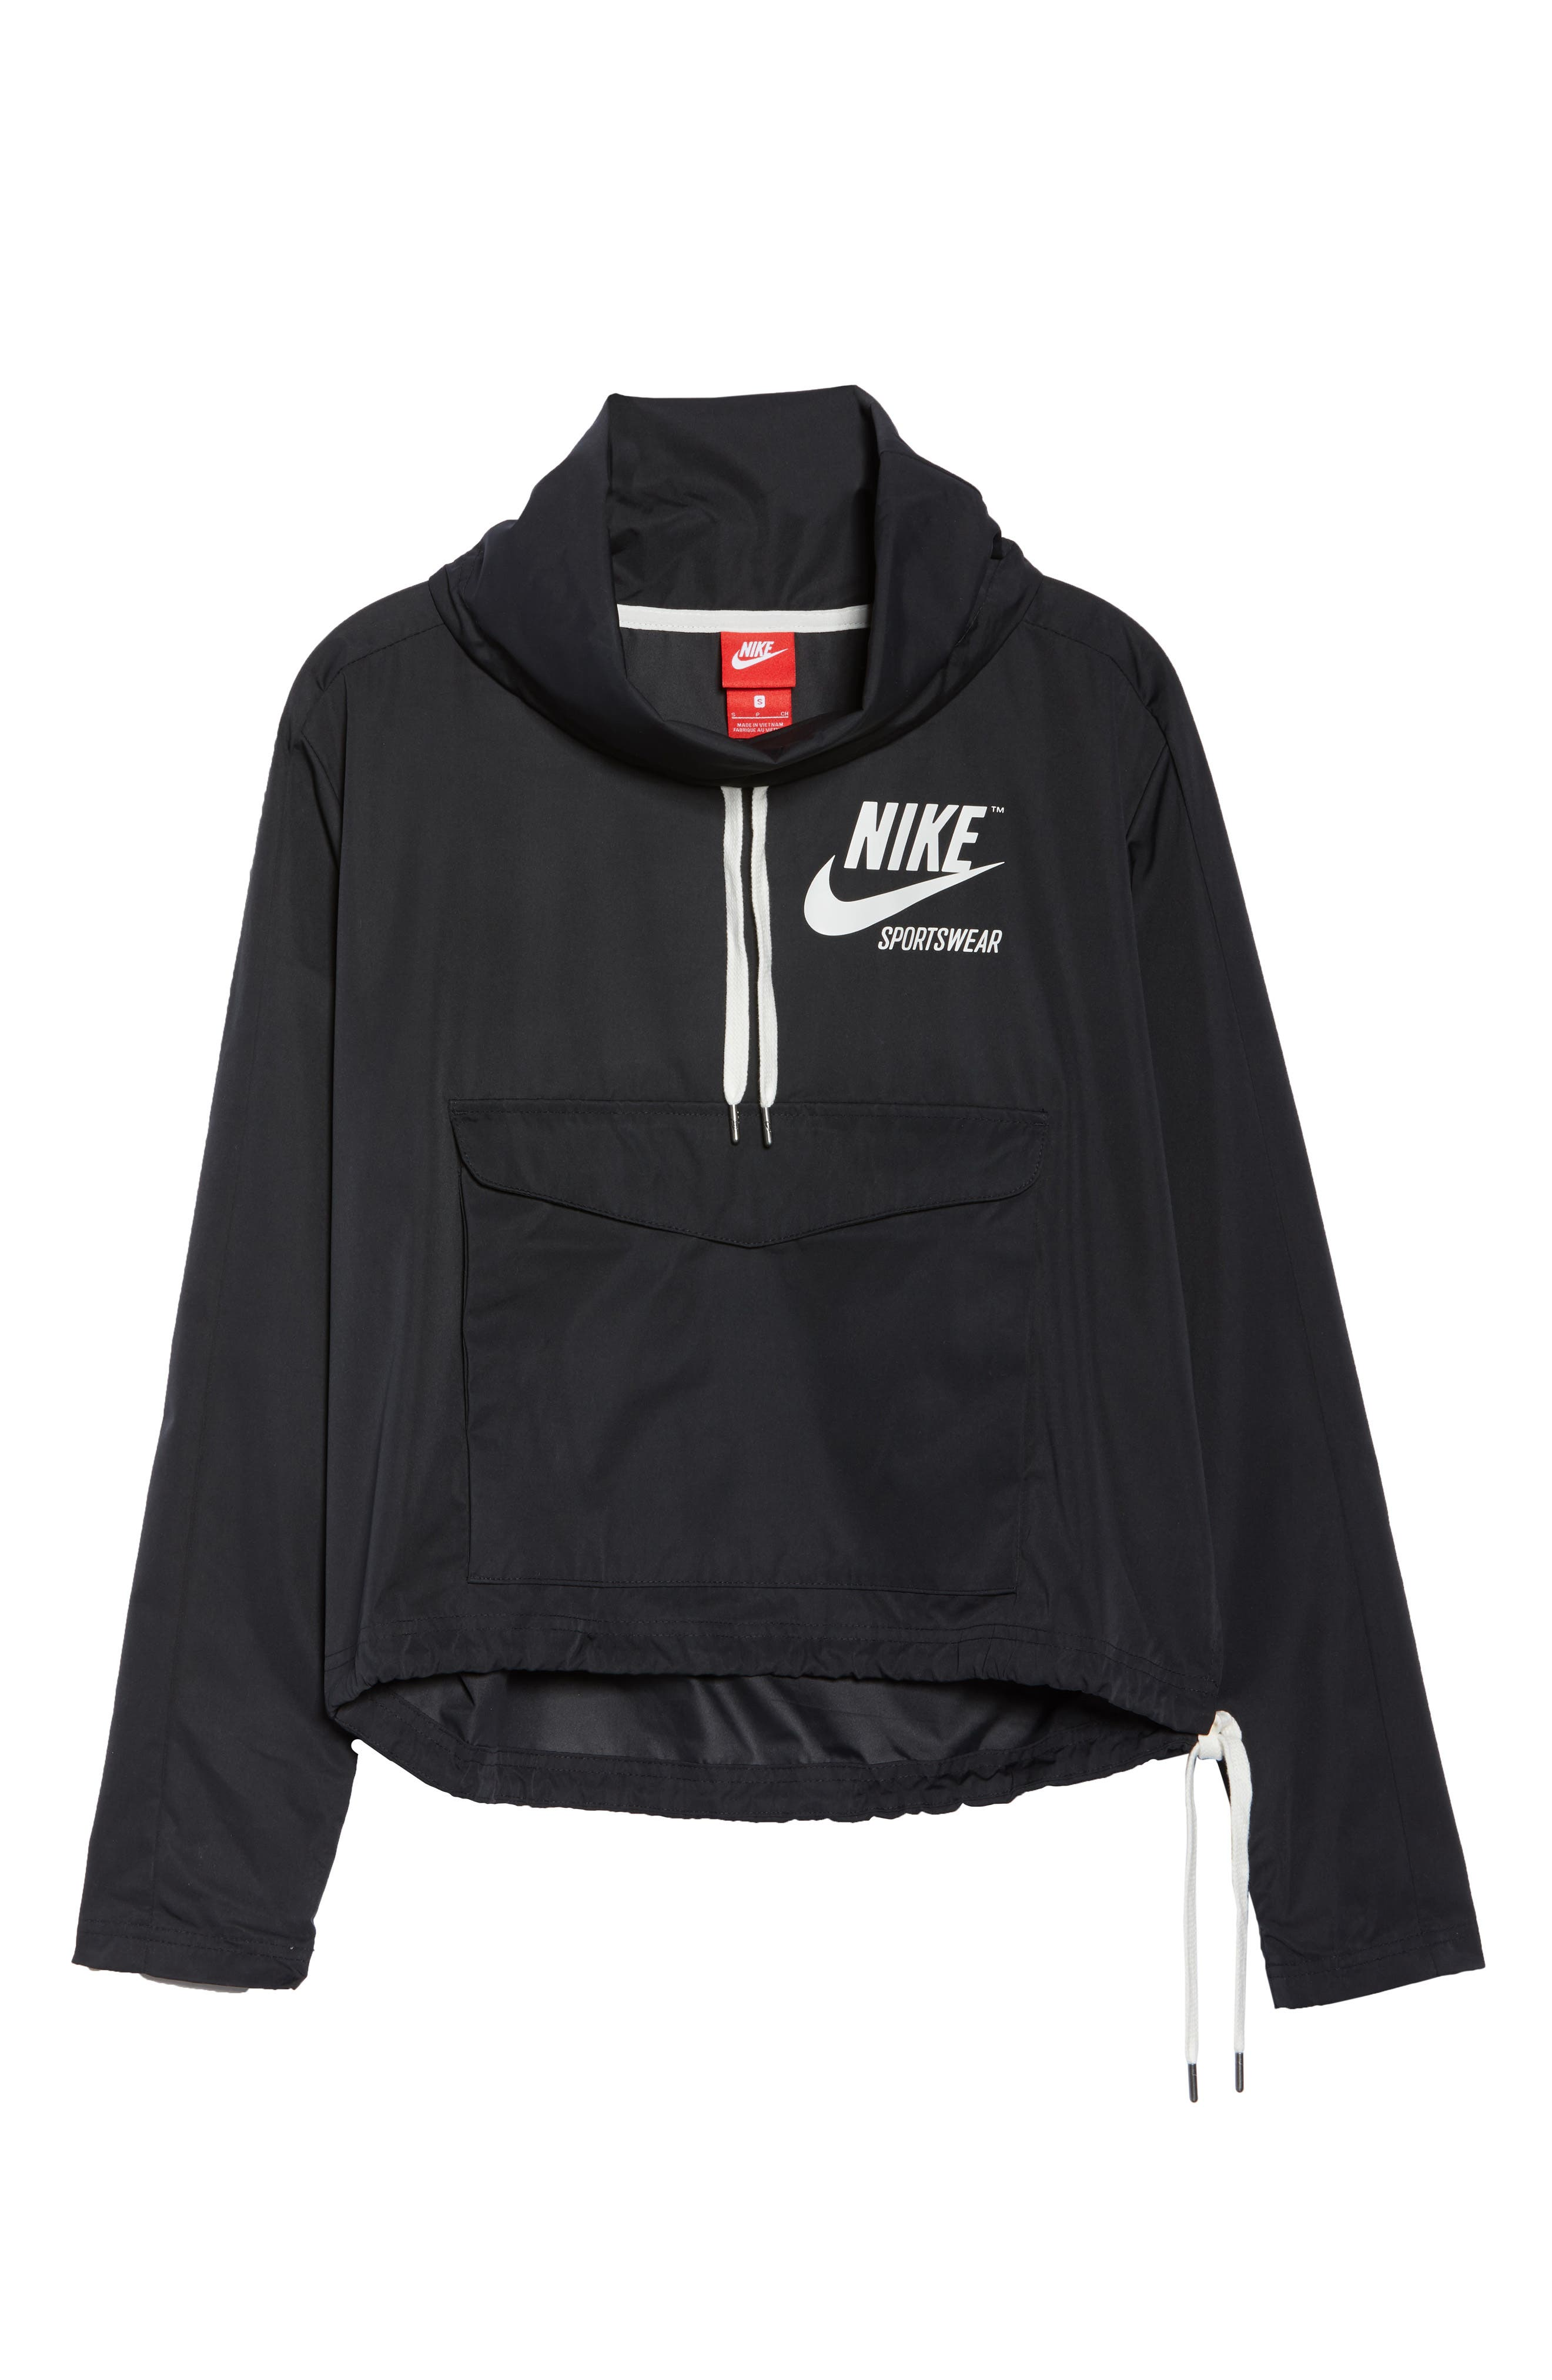 Sportswear Archive Jacket,                             Alternate thumbnail 12, color,